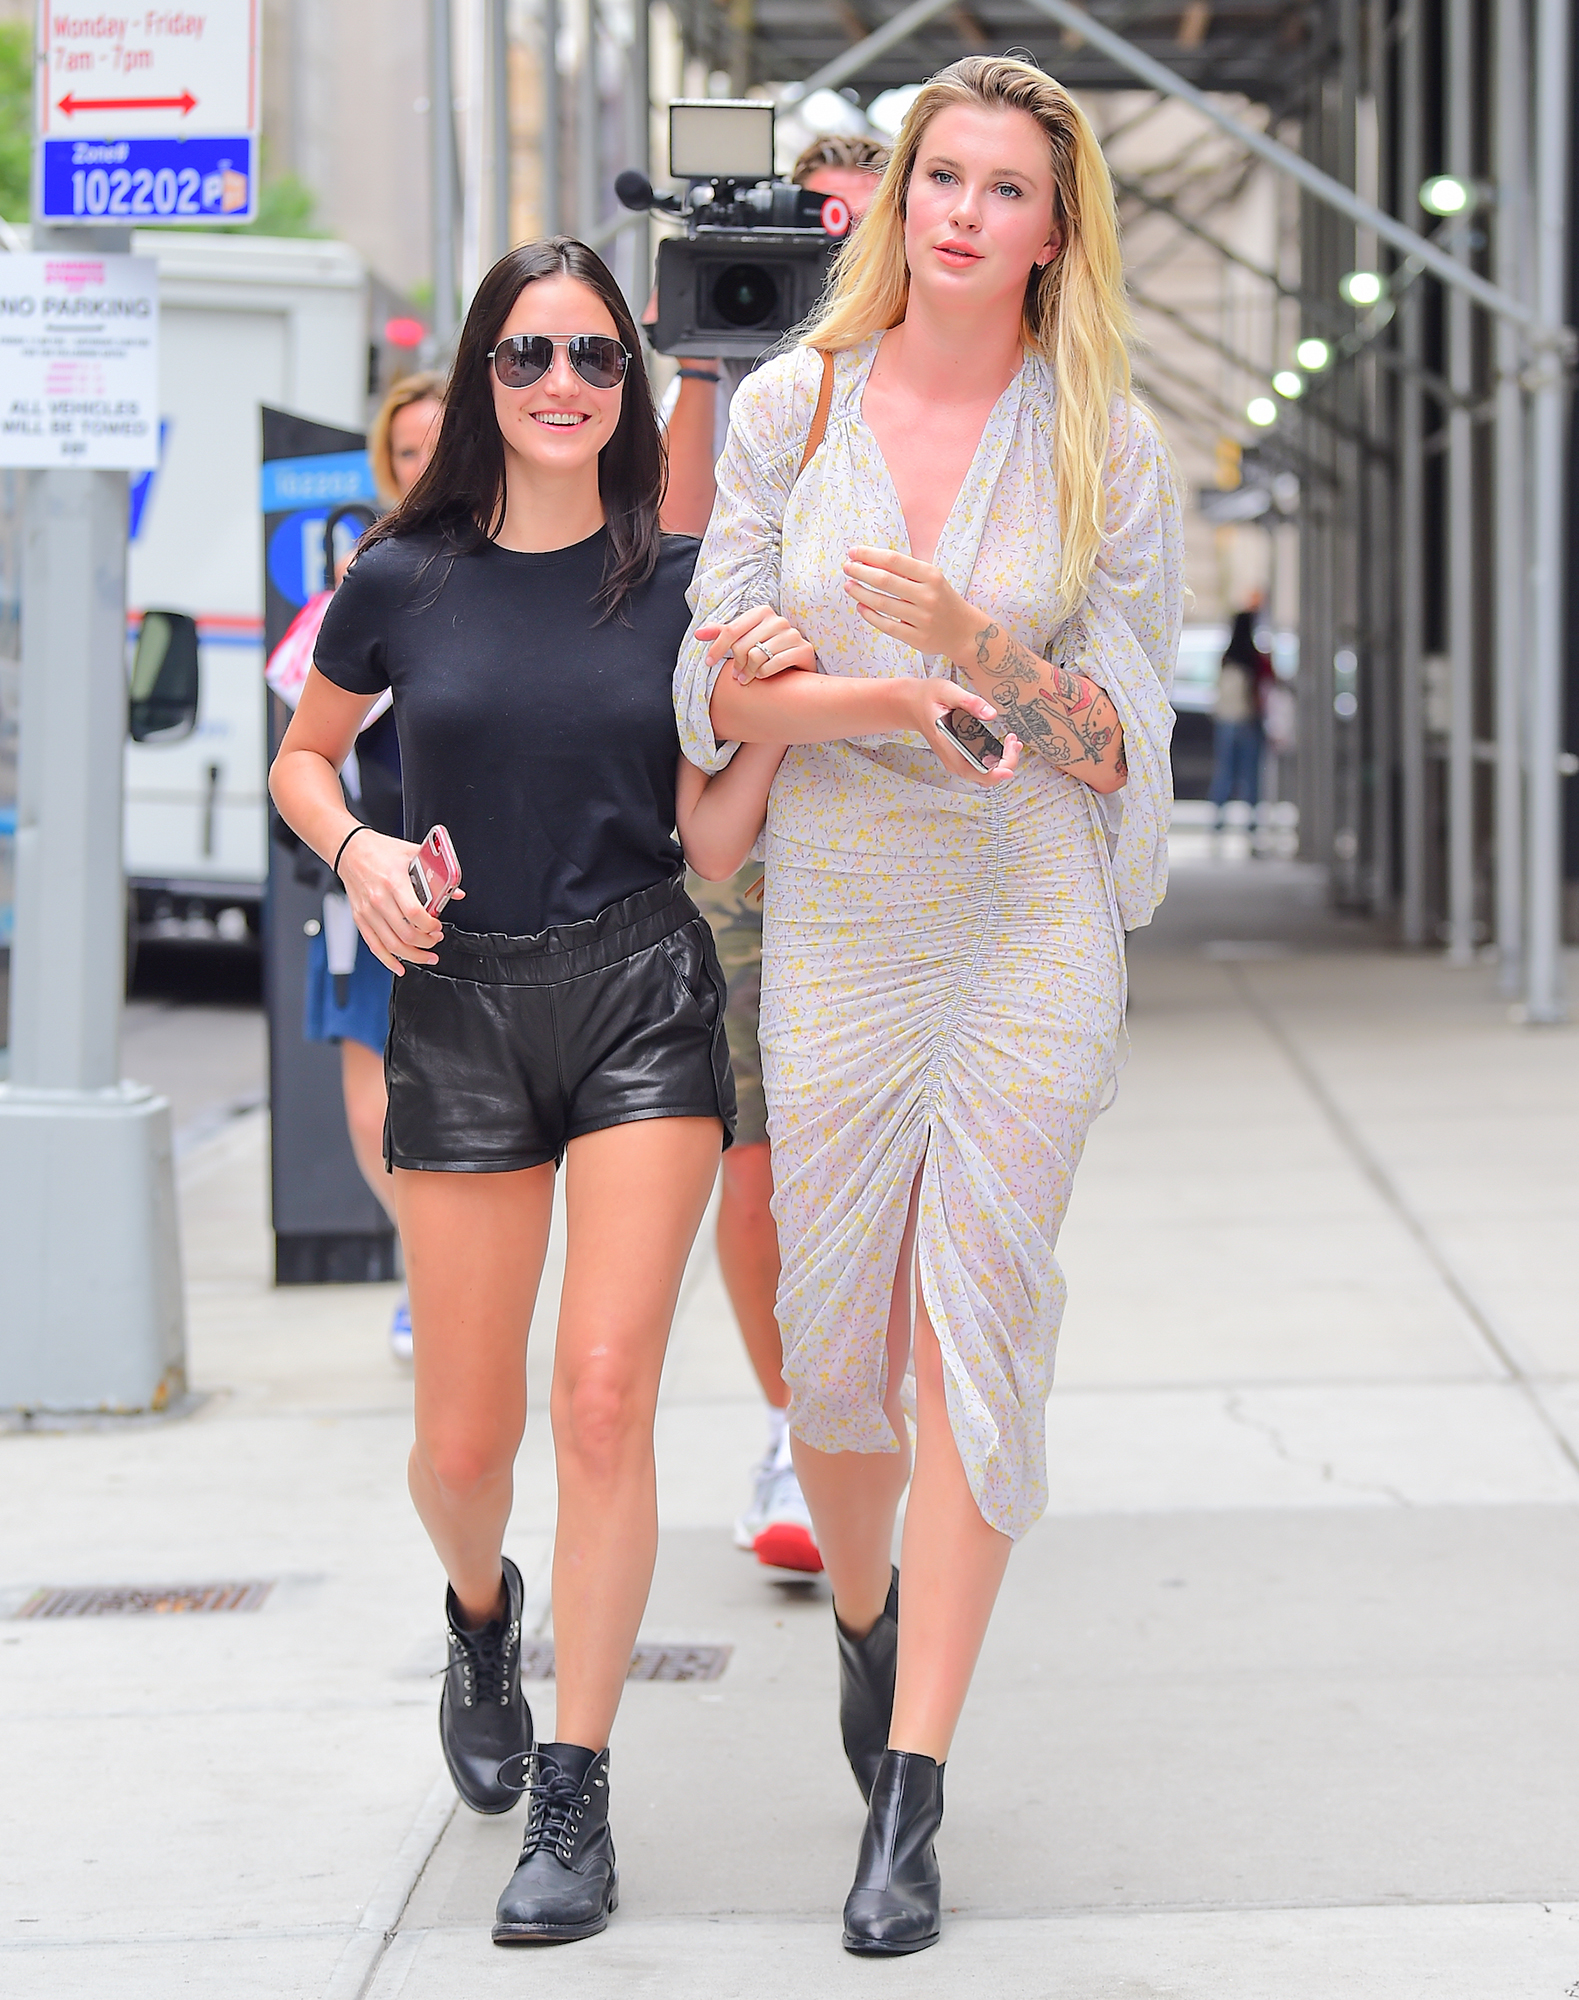 EXCLUSIVE: Keeping Up With The Baldwins Ireland And Alaia Baldwin Spotted Filming New TV Show In NYC